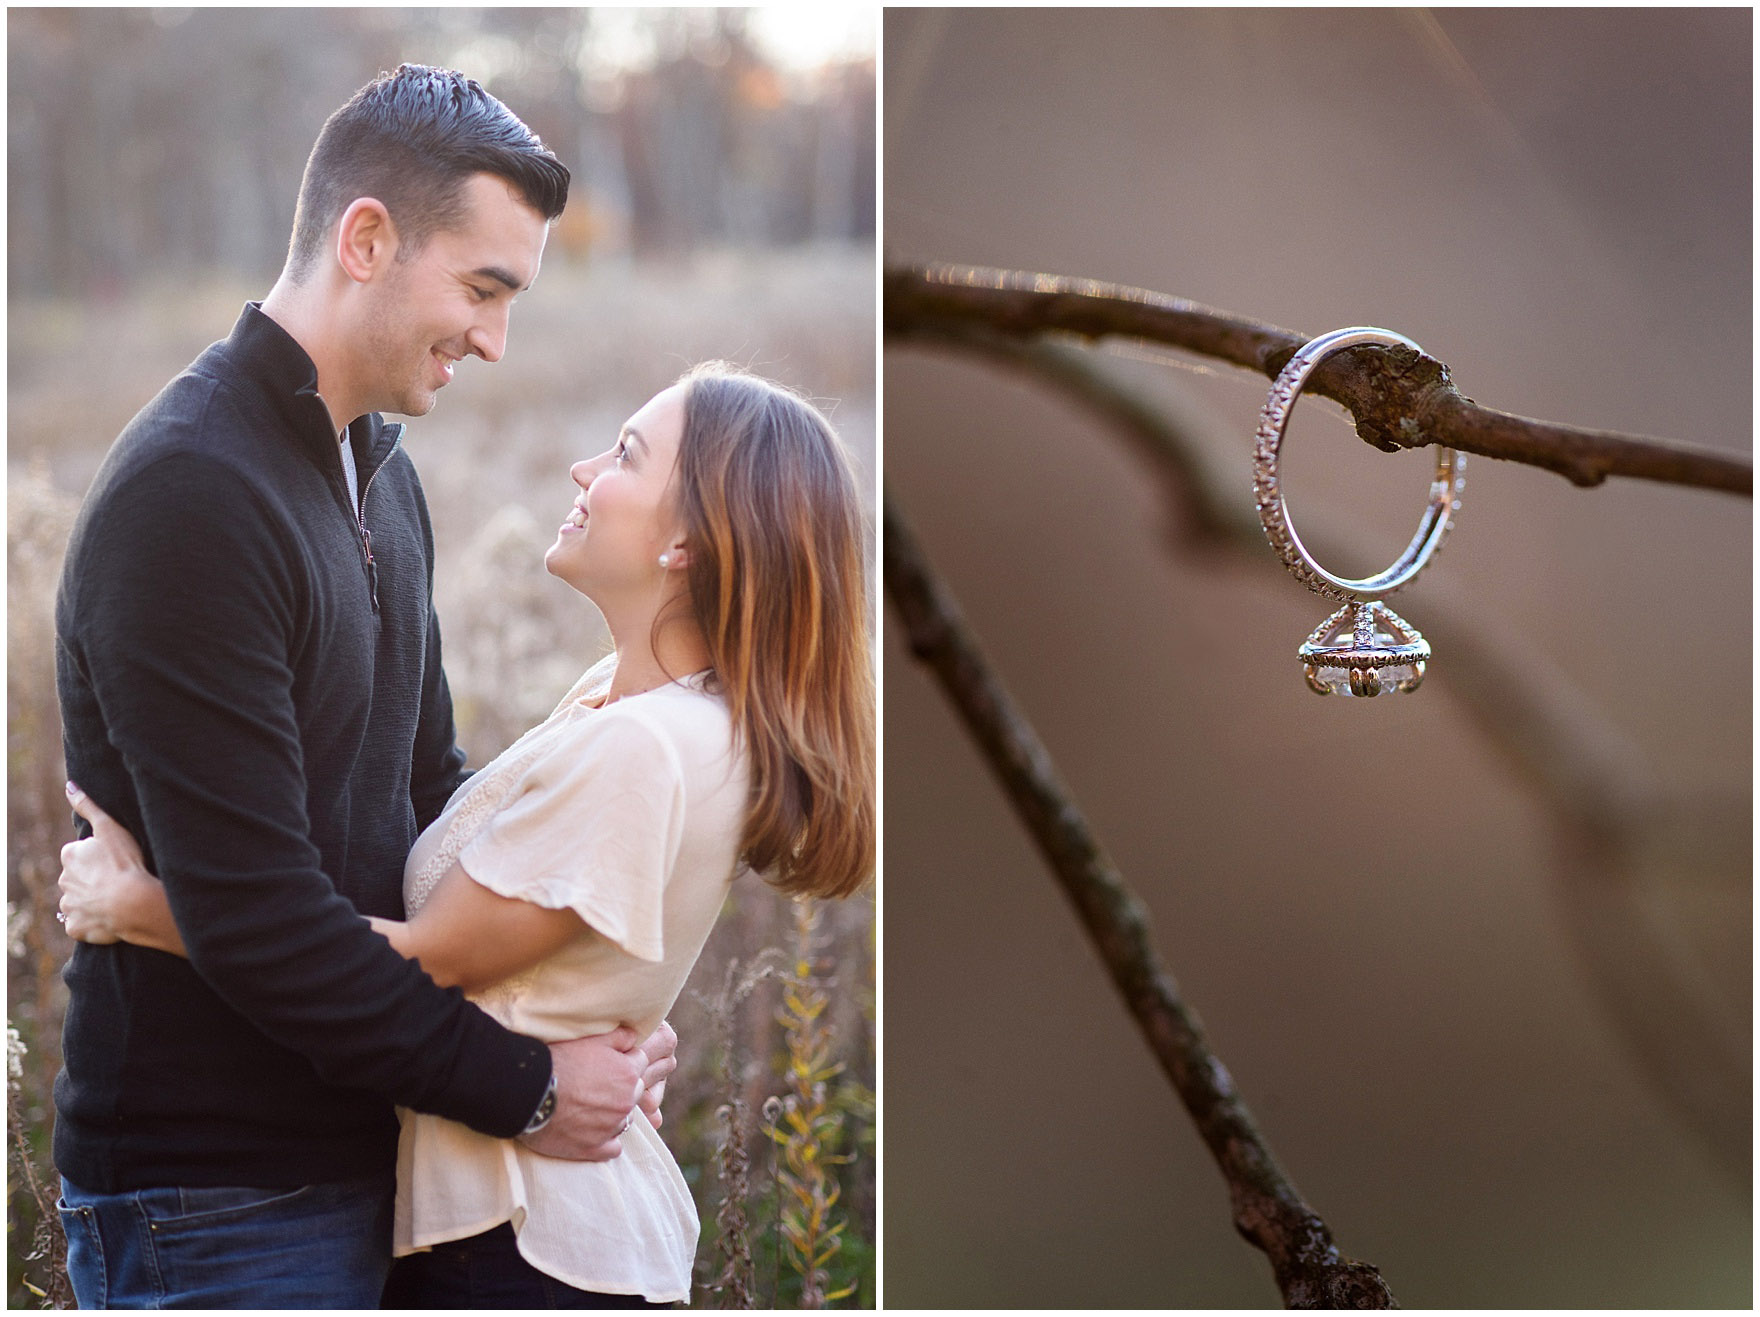 An engagement ring hangs from a branch during a fall woods engagement session.